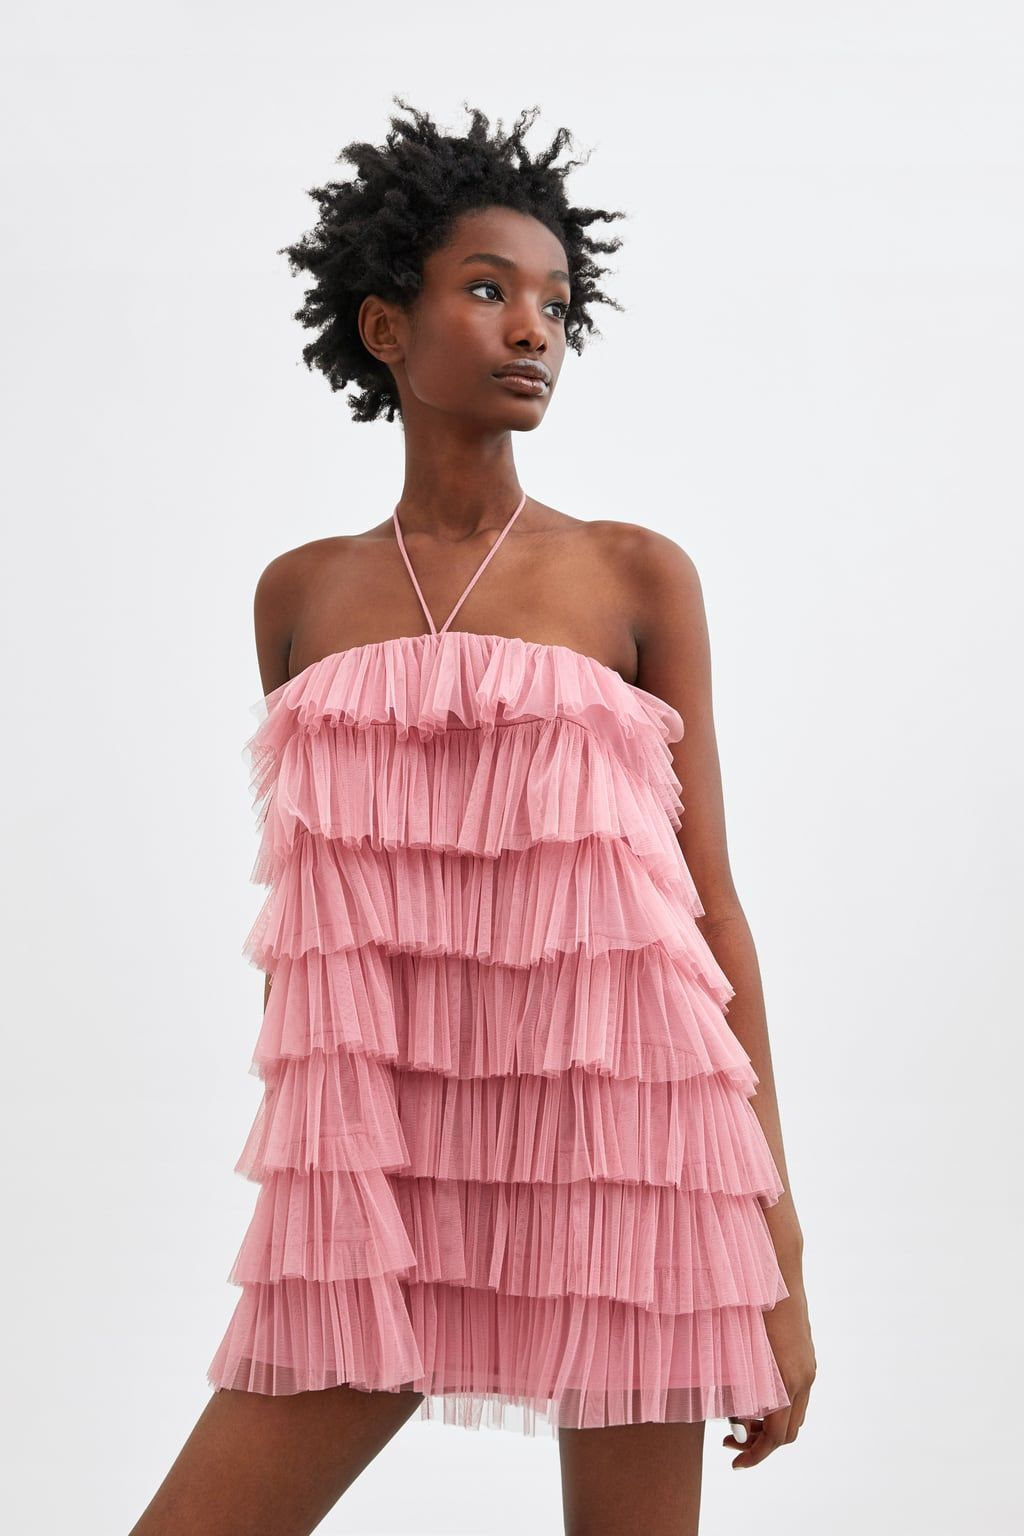 b2e7a6ffdd656 Limited edition ruffled tulle dress in 2019 | Pretty things | Tulle ...